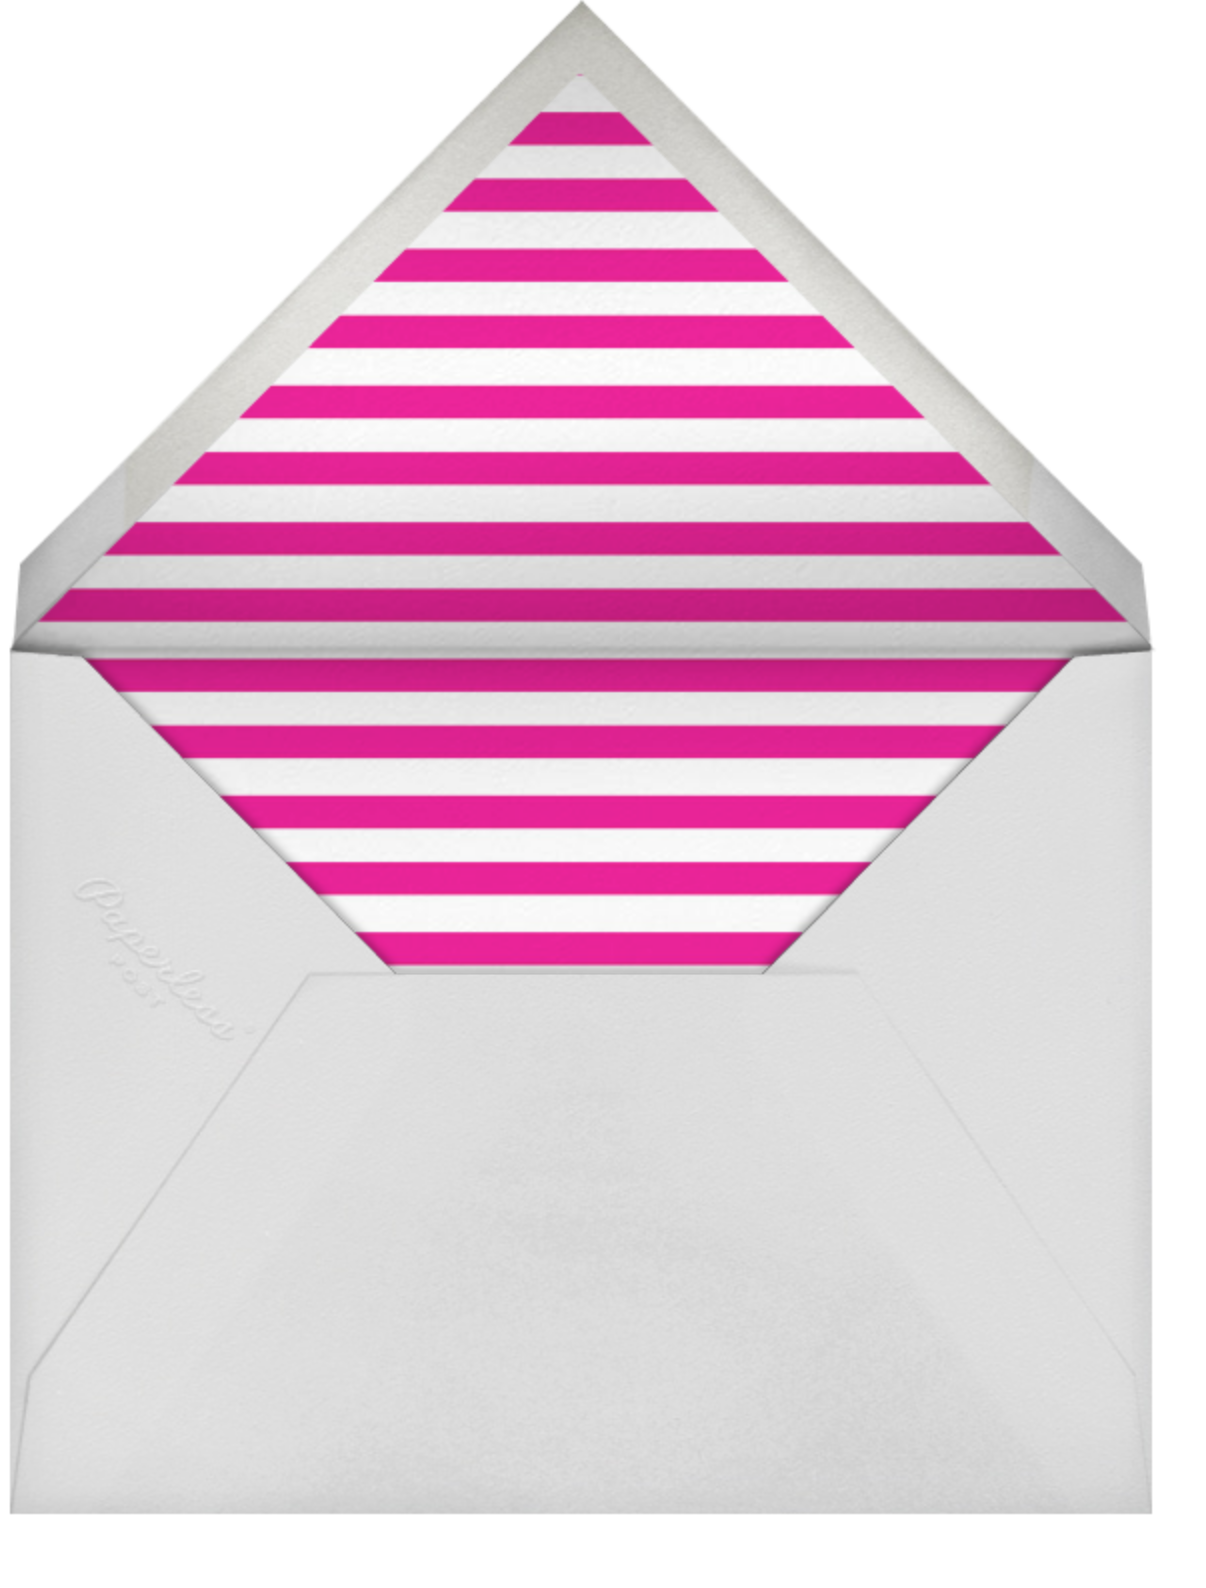 Confetti - Bright Pink/Gold - kate spade new york - Birthday - envelope back